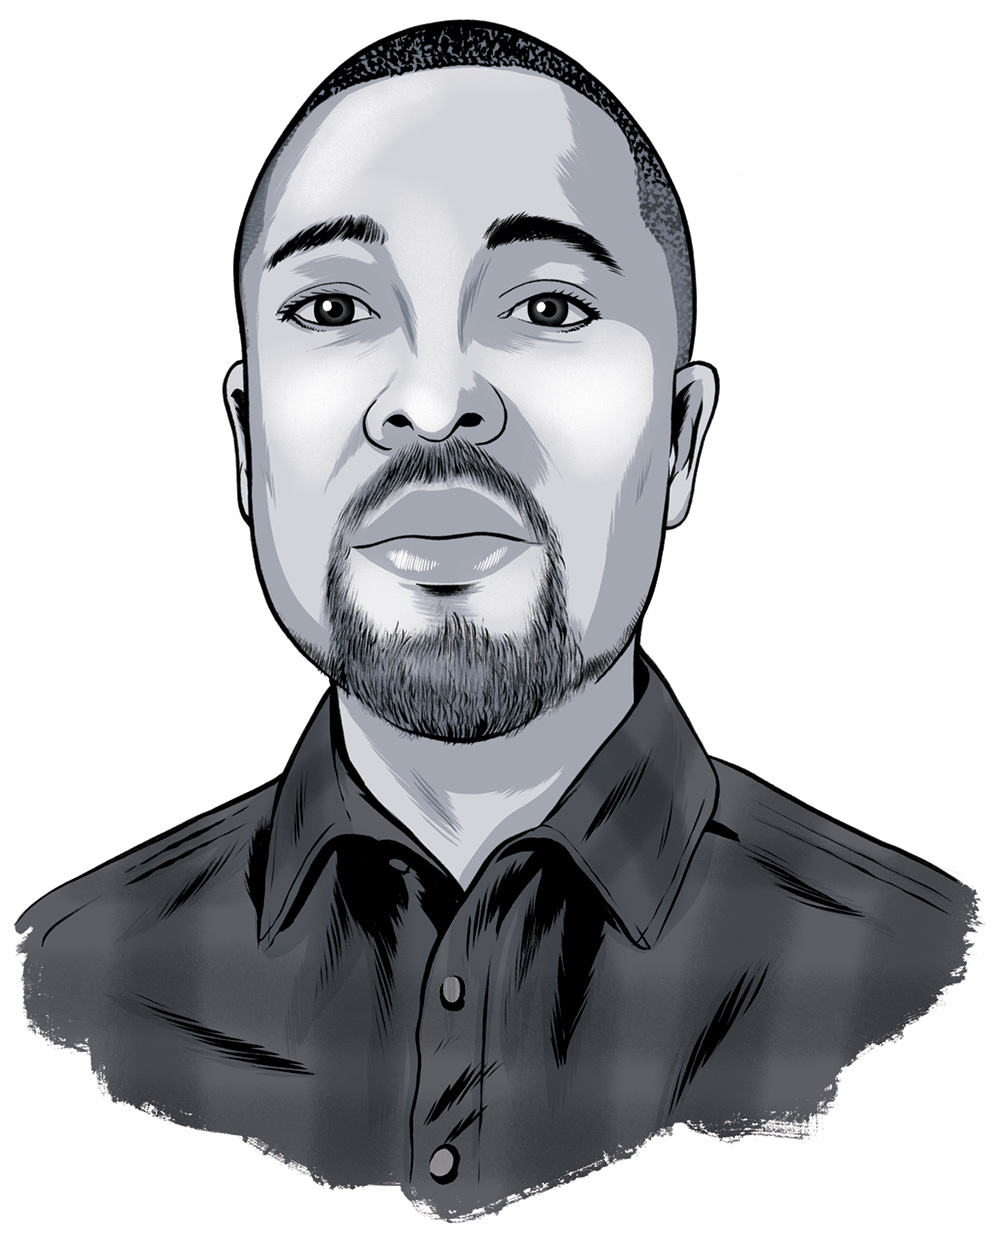 Nick Jones, Assistant professor of Spanish and faculty fellow for diversity, equity & inclusion